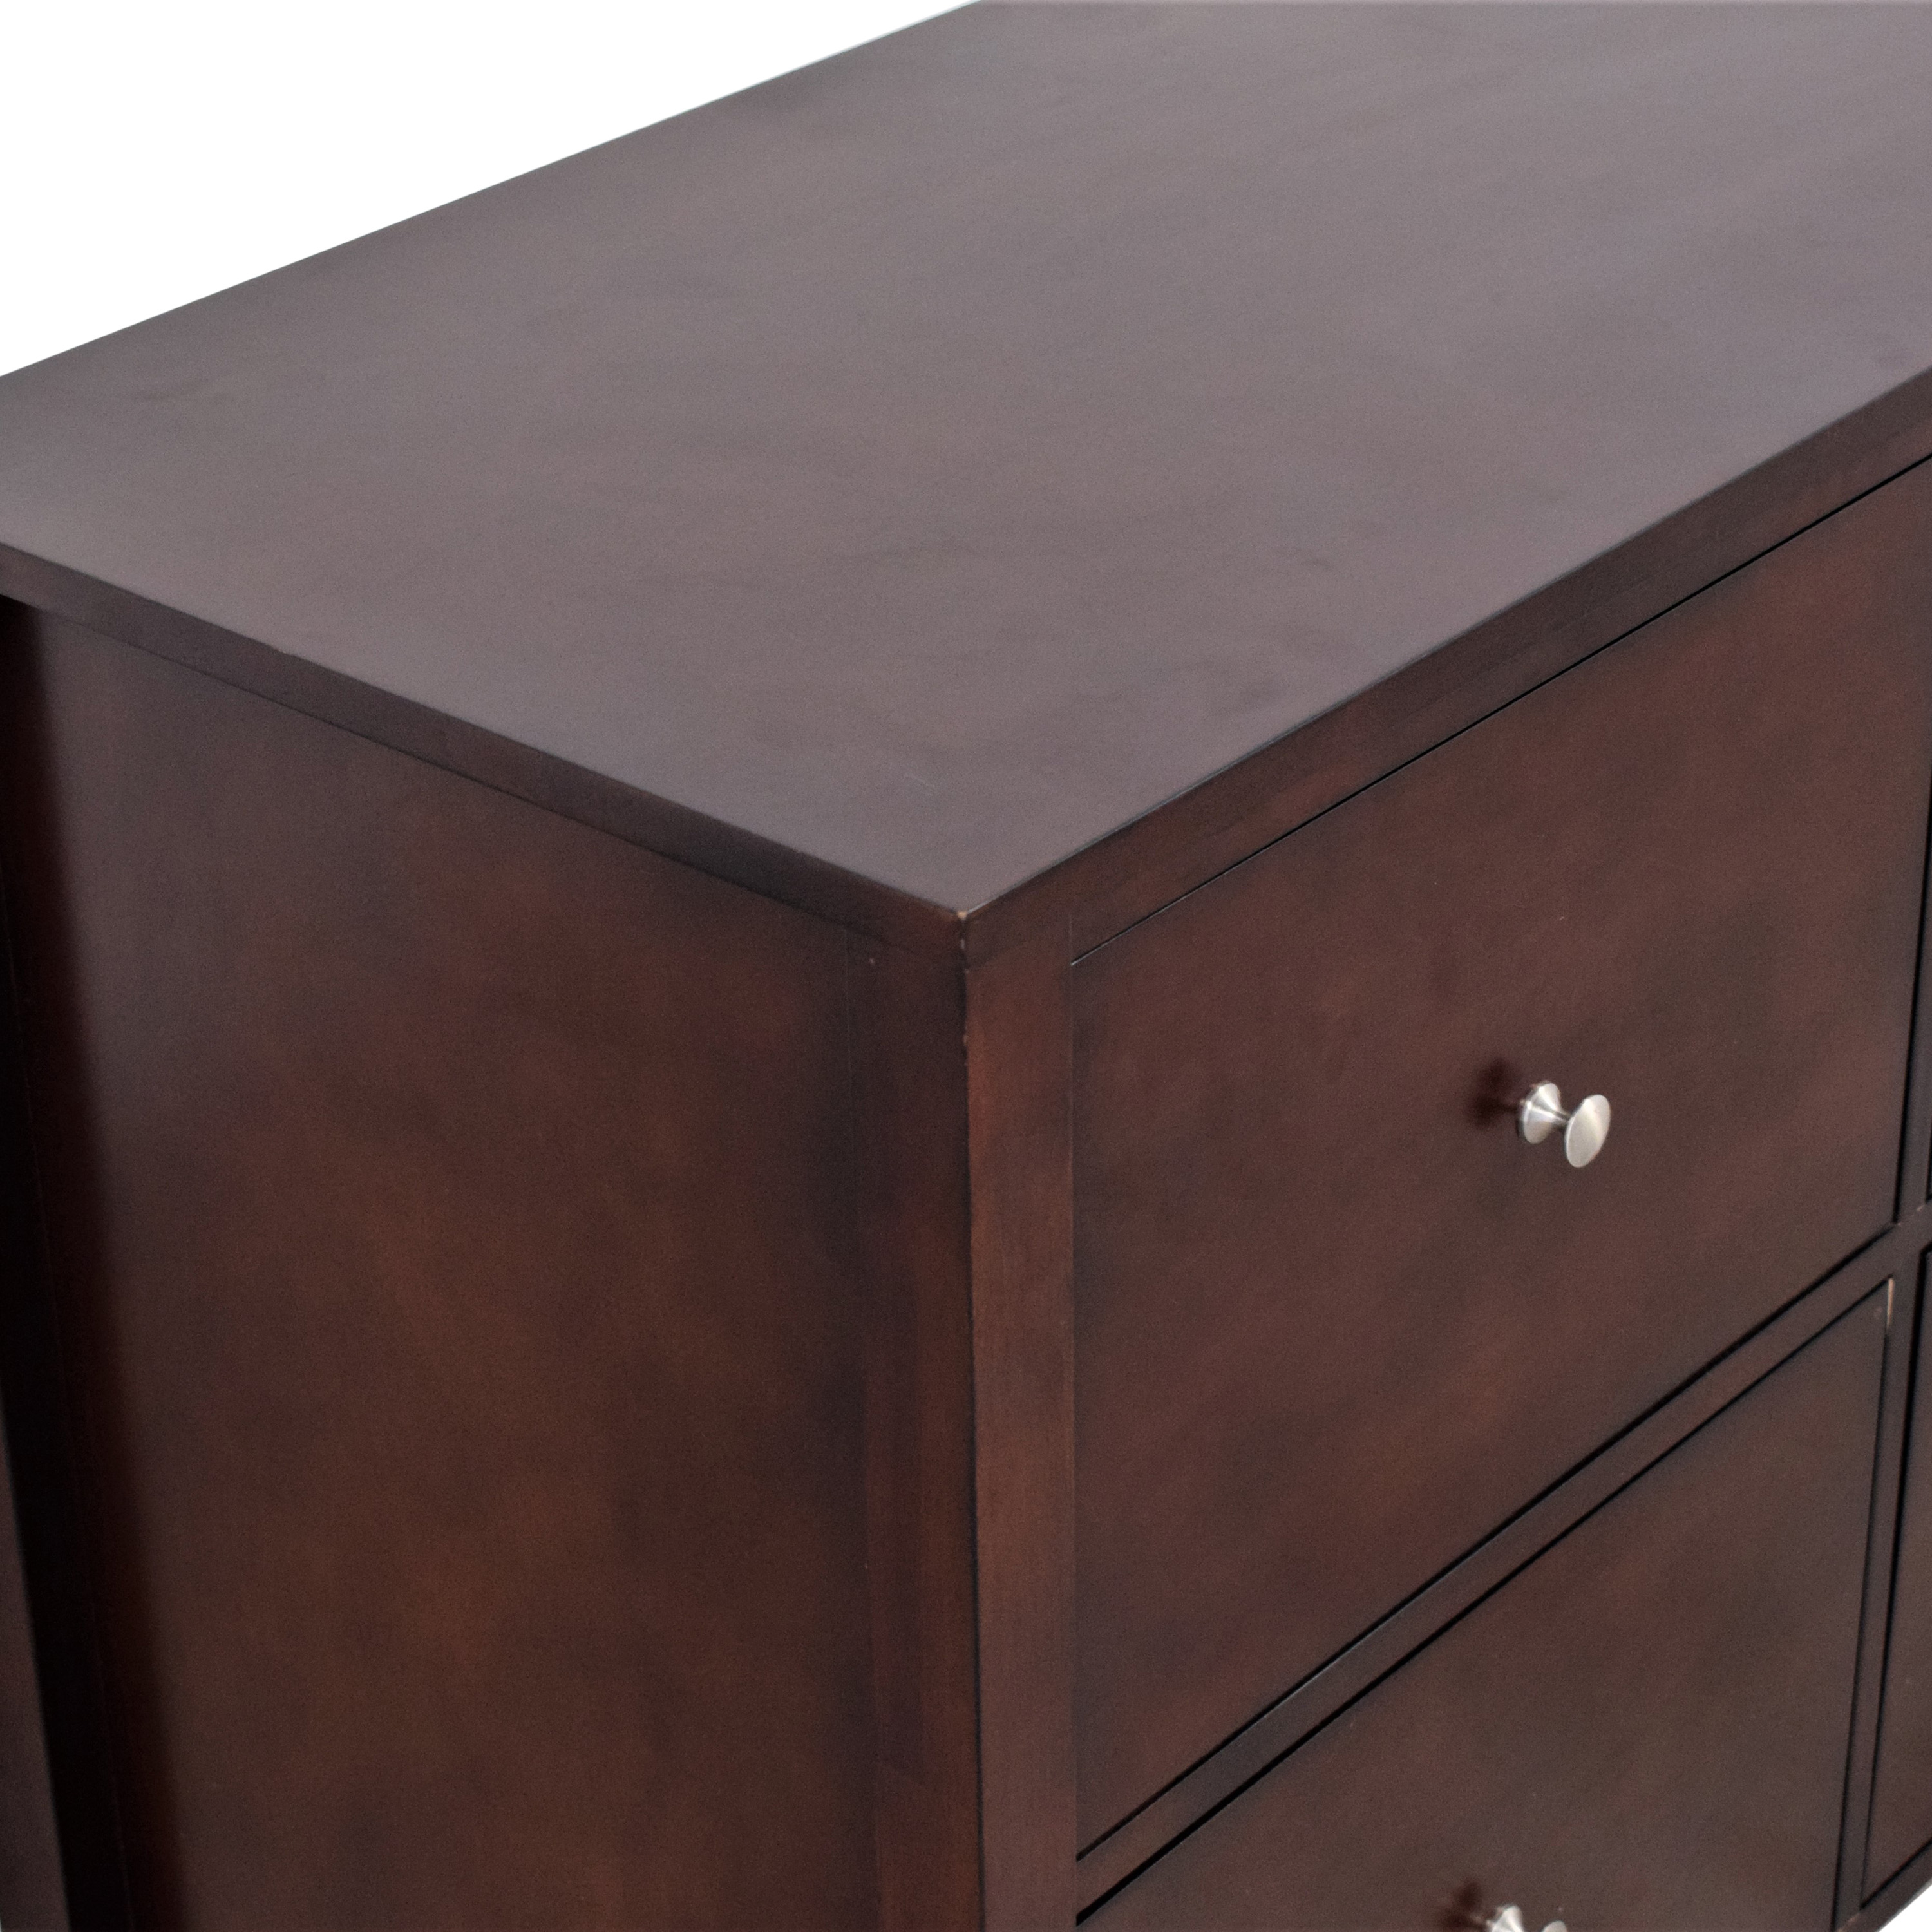 Lifestyle Solutions Lifestyle Solutions Modern 6 Drawer Dresser nyc